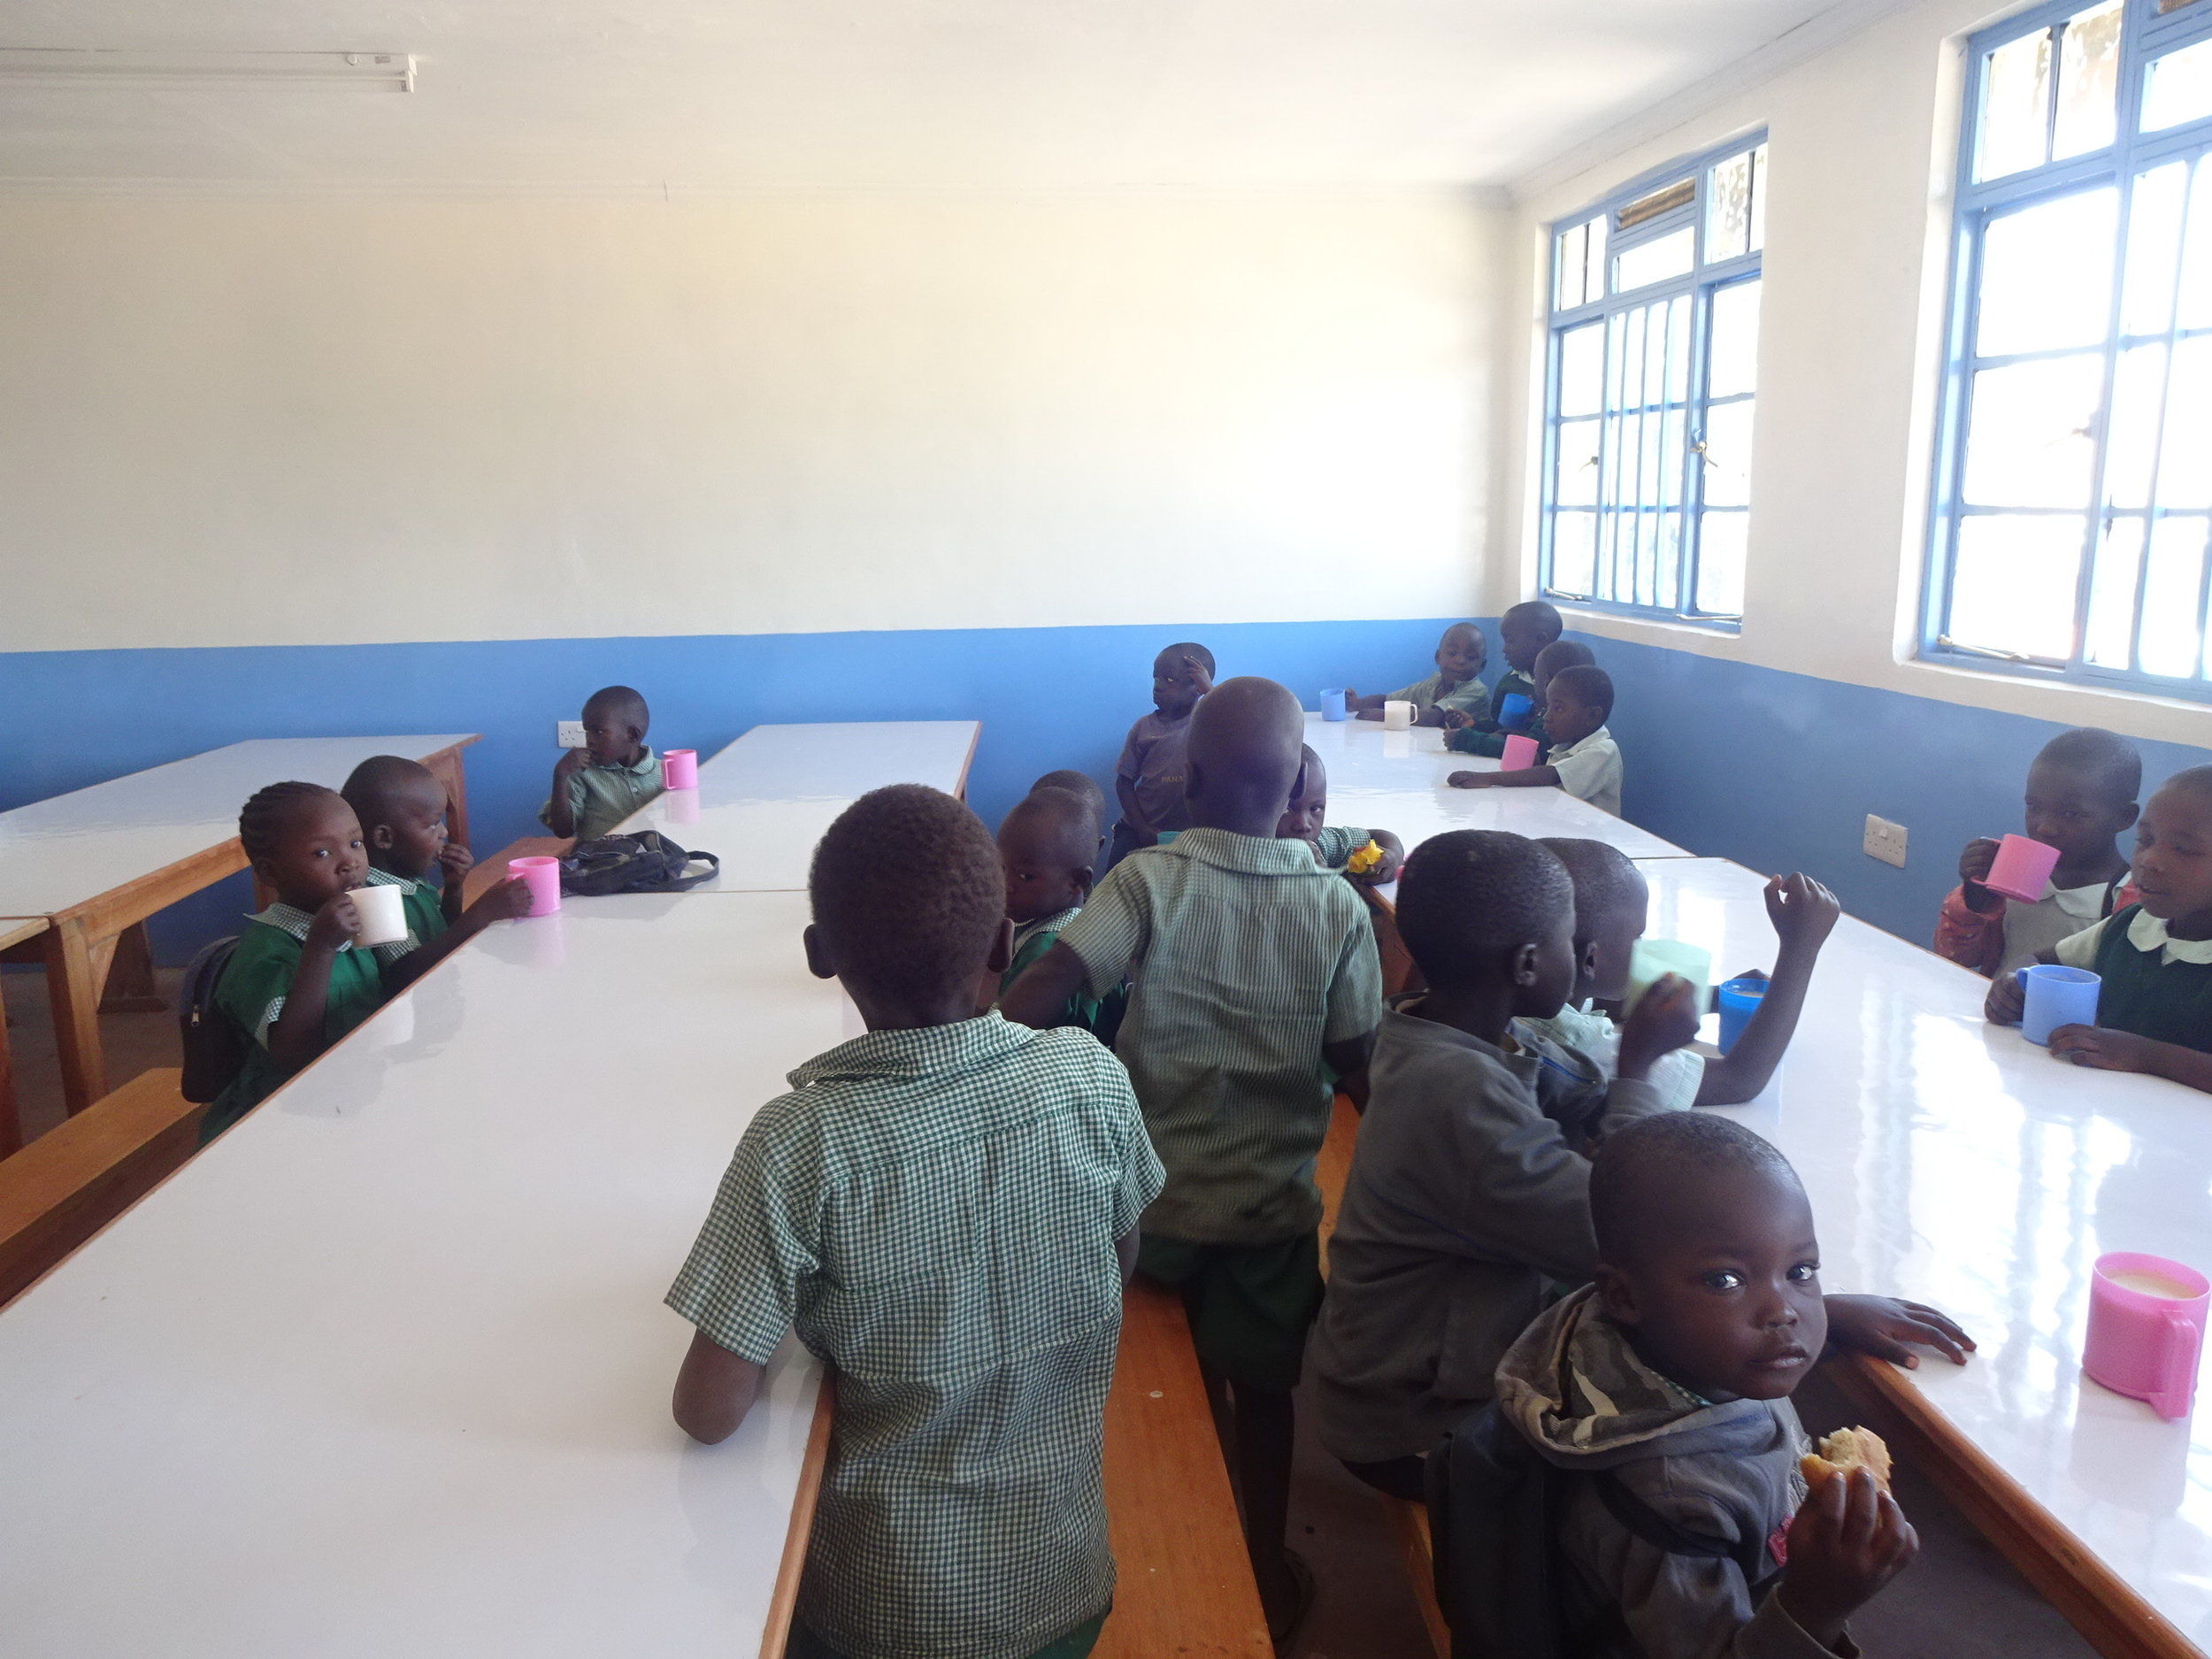 Students at Snacktime